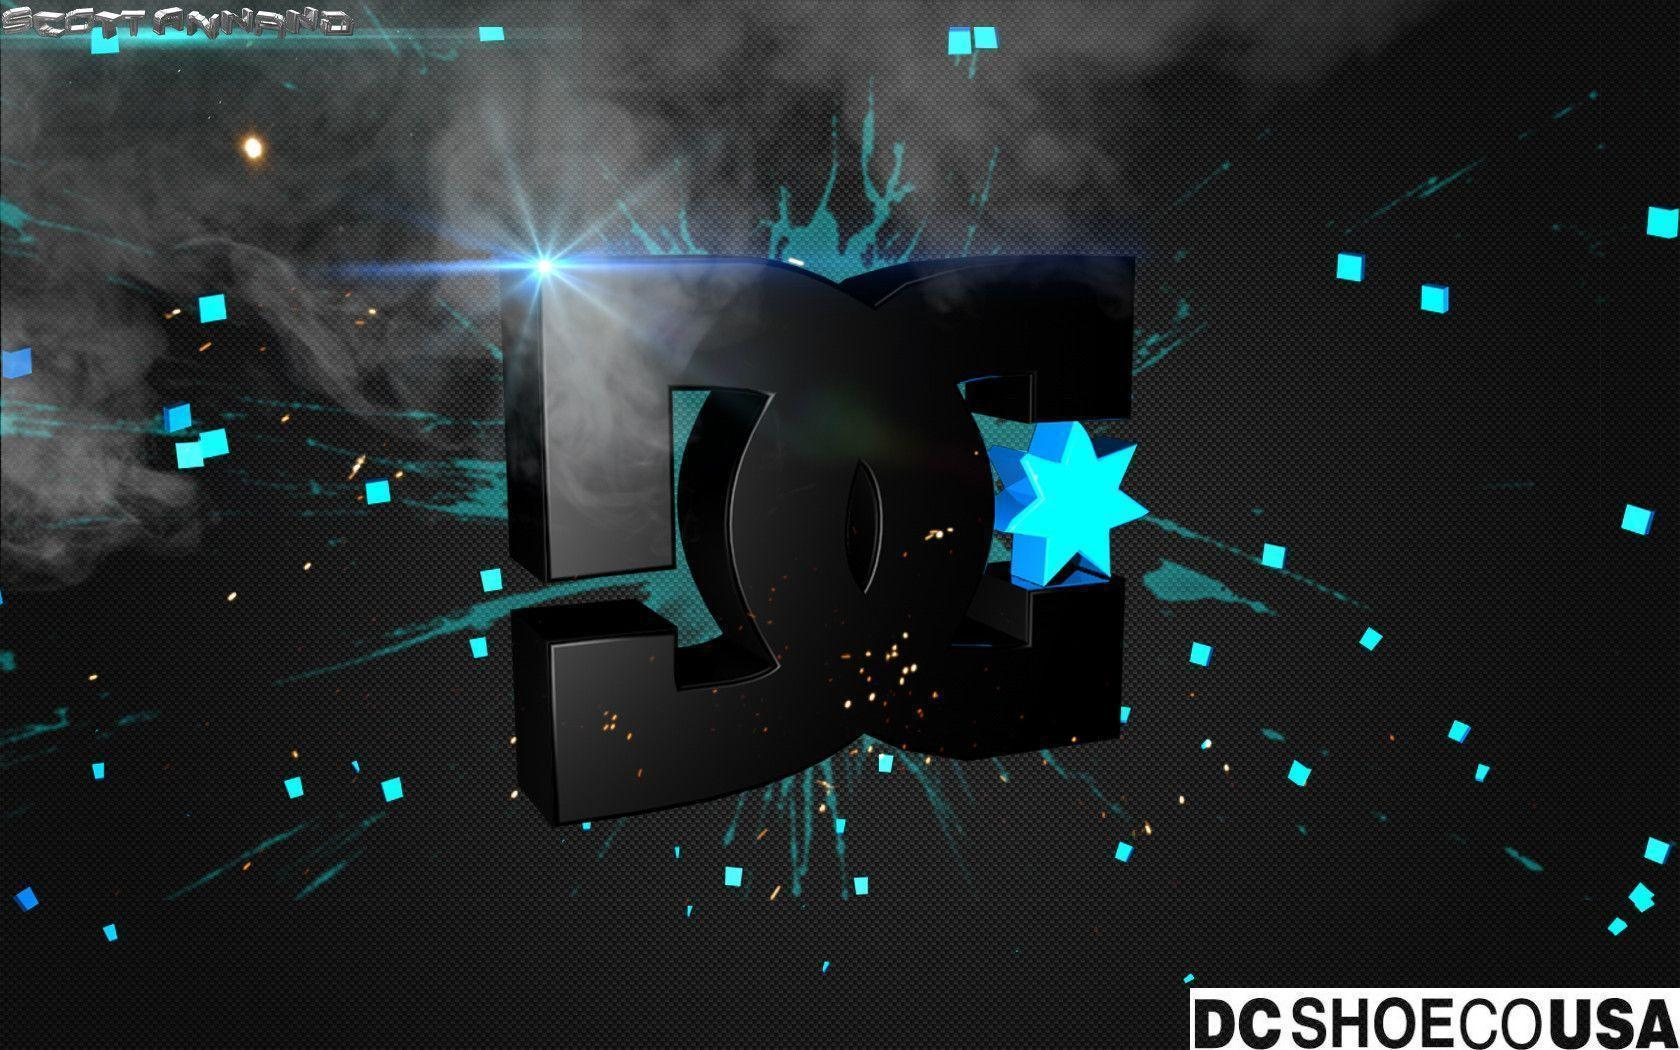 Dc Shoes Logo Wallpapers Wallpaper Cave HD Wallpapers Download Free Images Wallpaper [1000image.com]